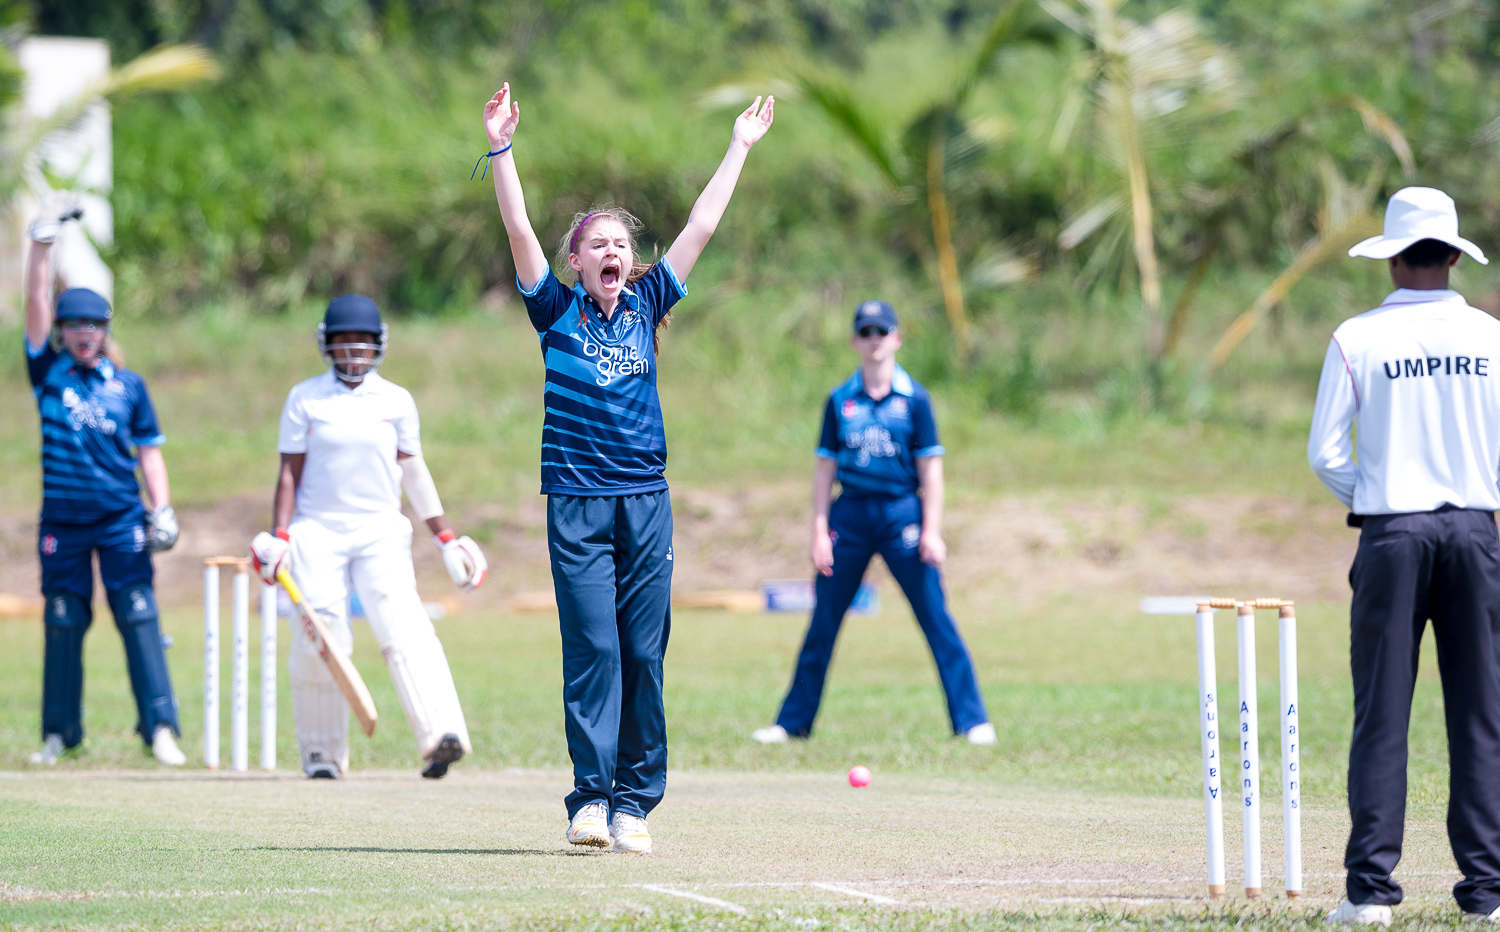 U17 girls lose T20 semi but triumph in 50 over local derby